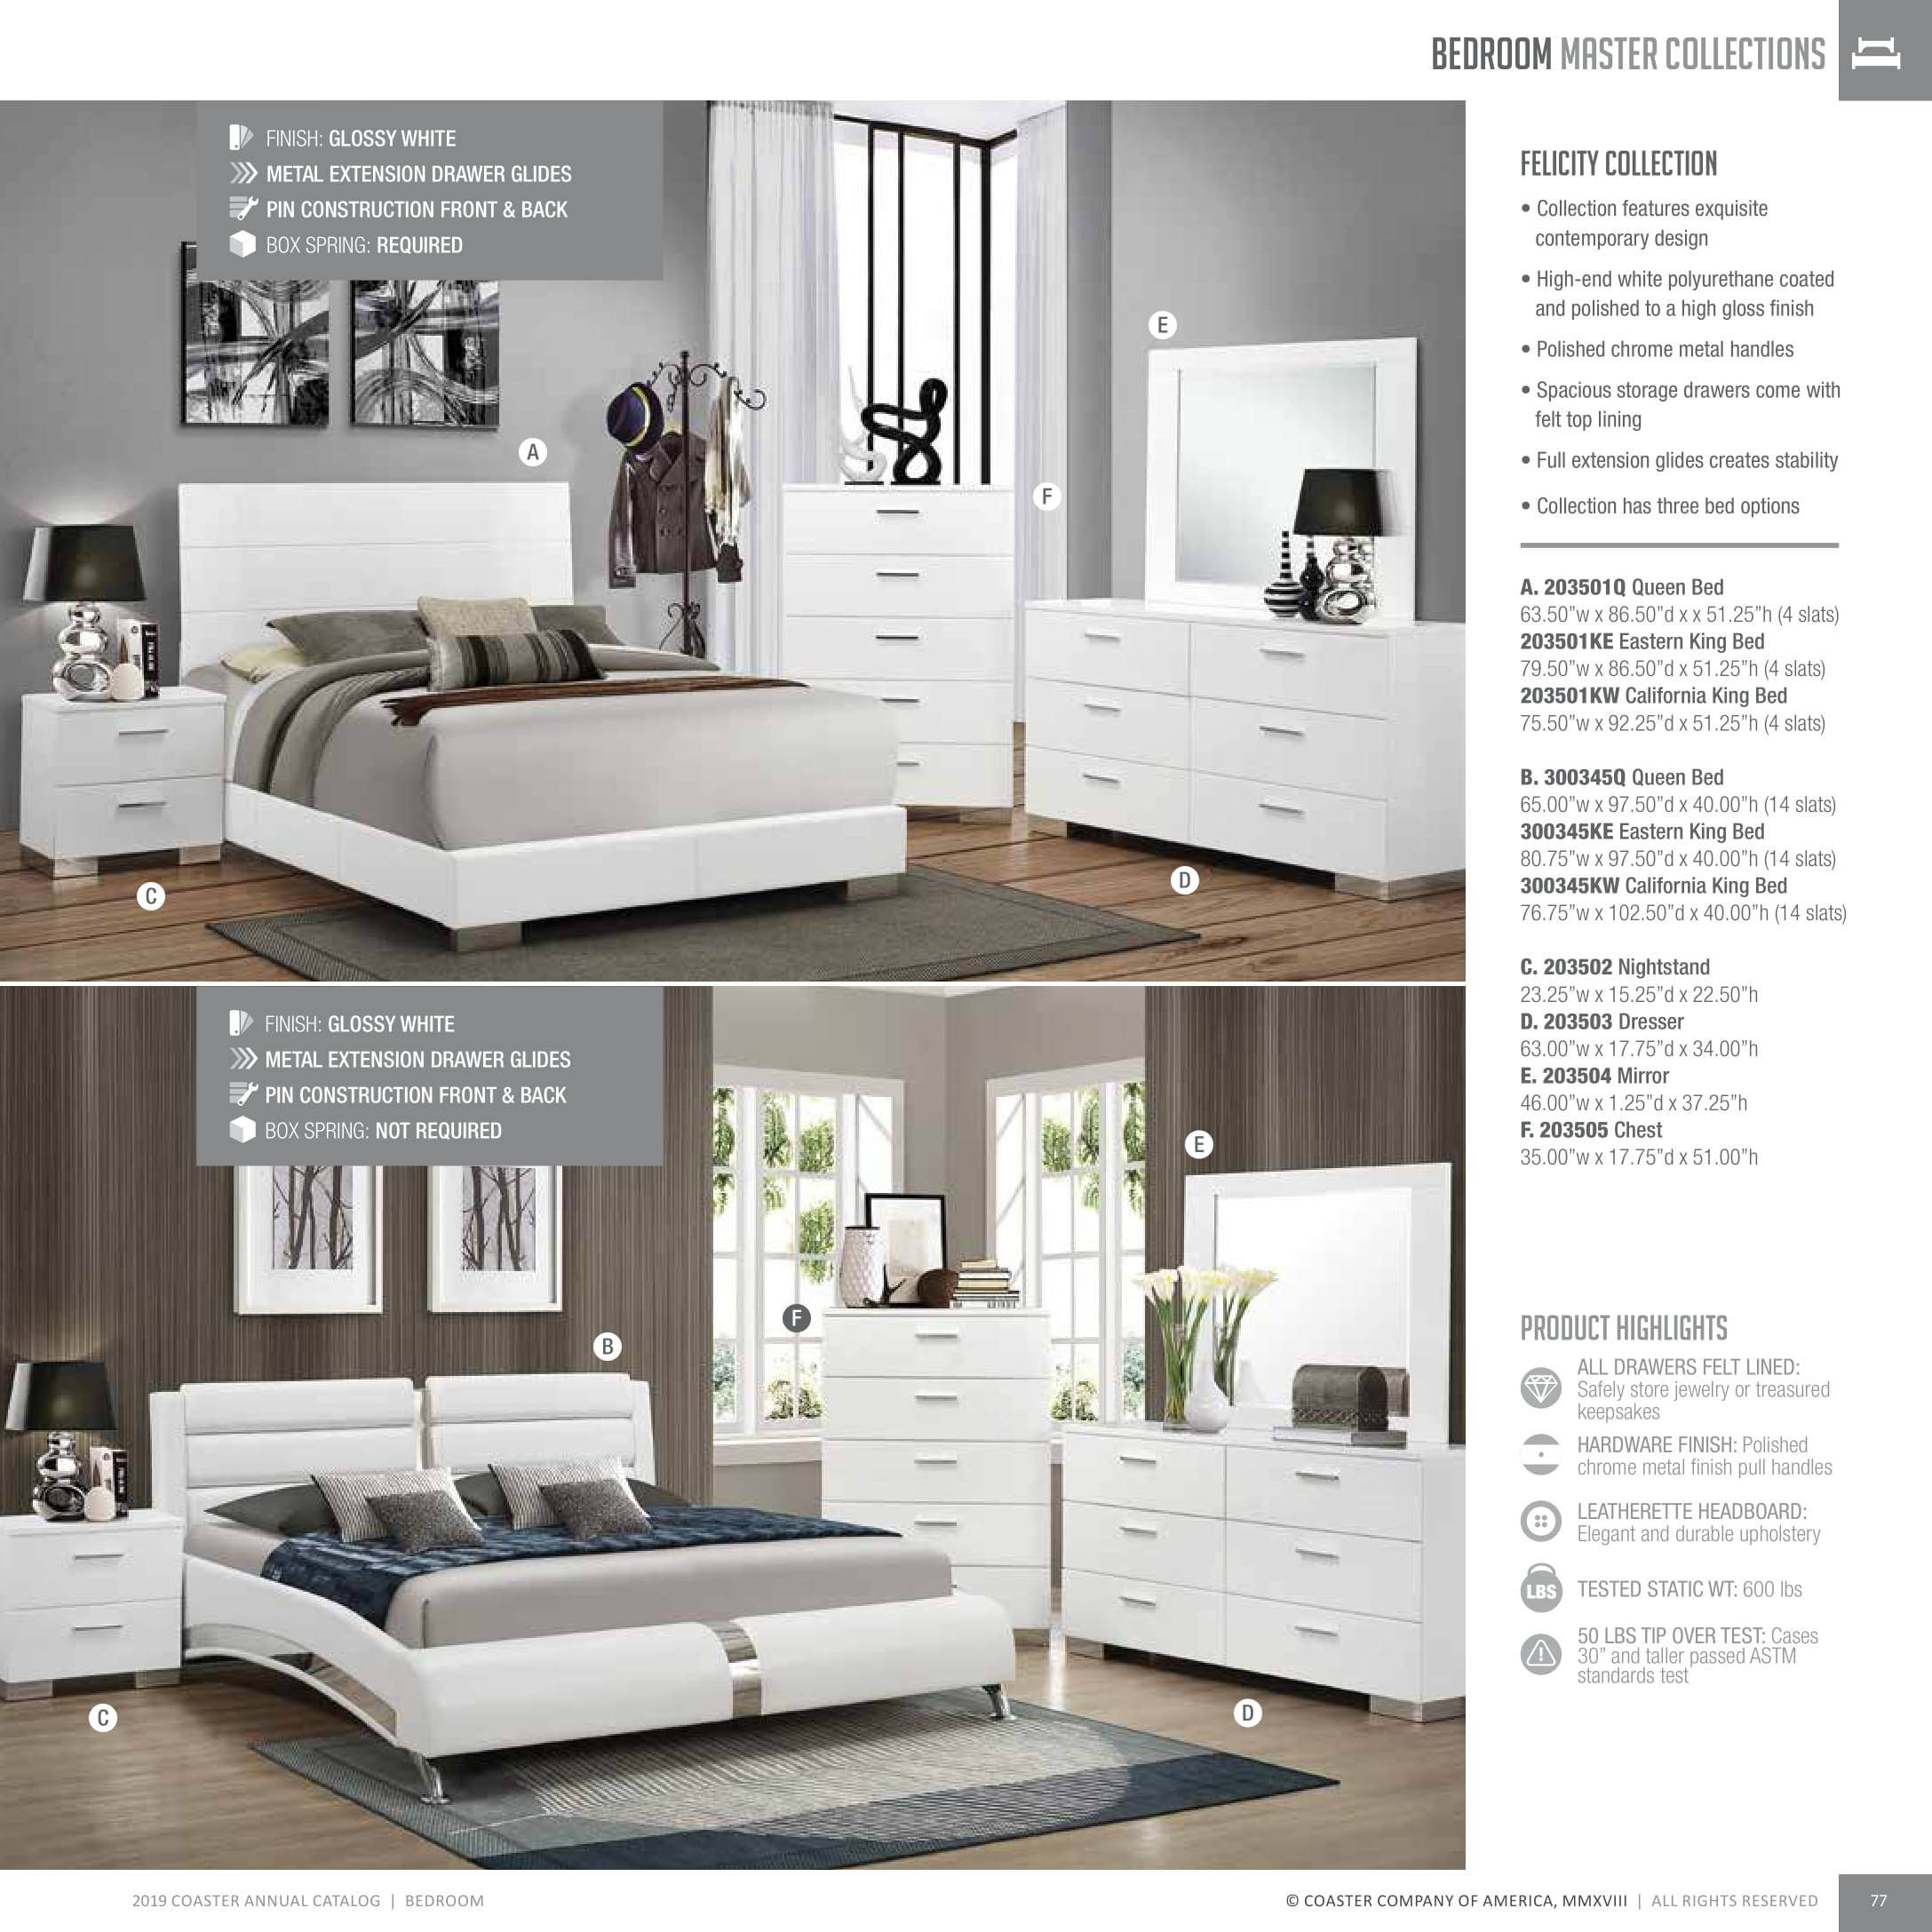 2019 Bedrooms | Lisys Discount Furniture